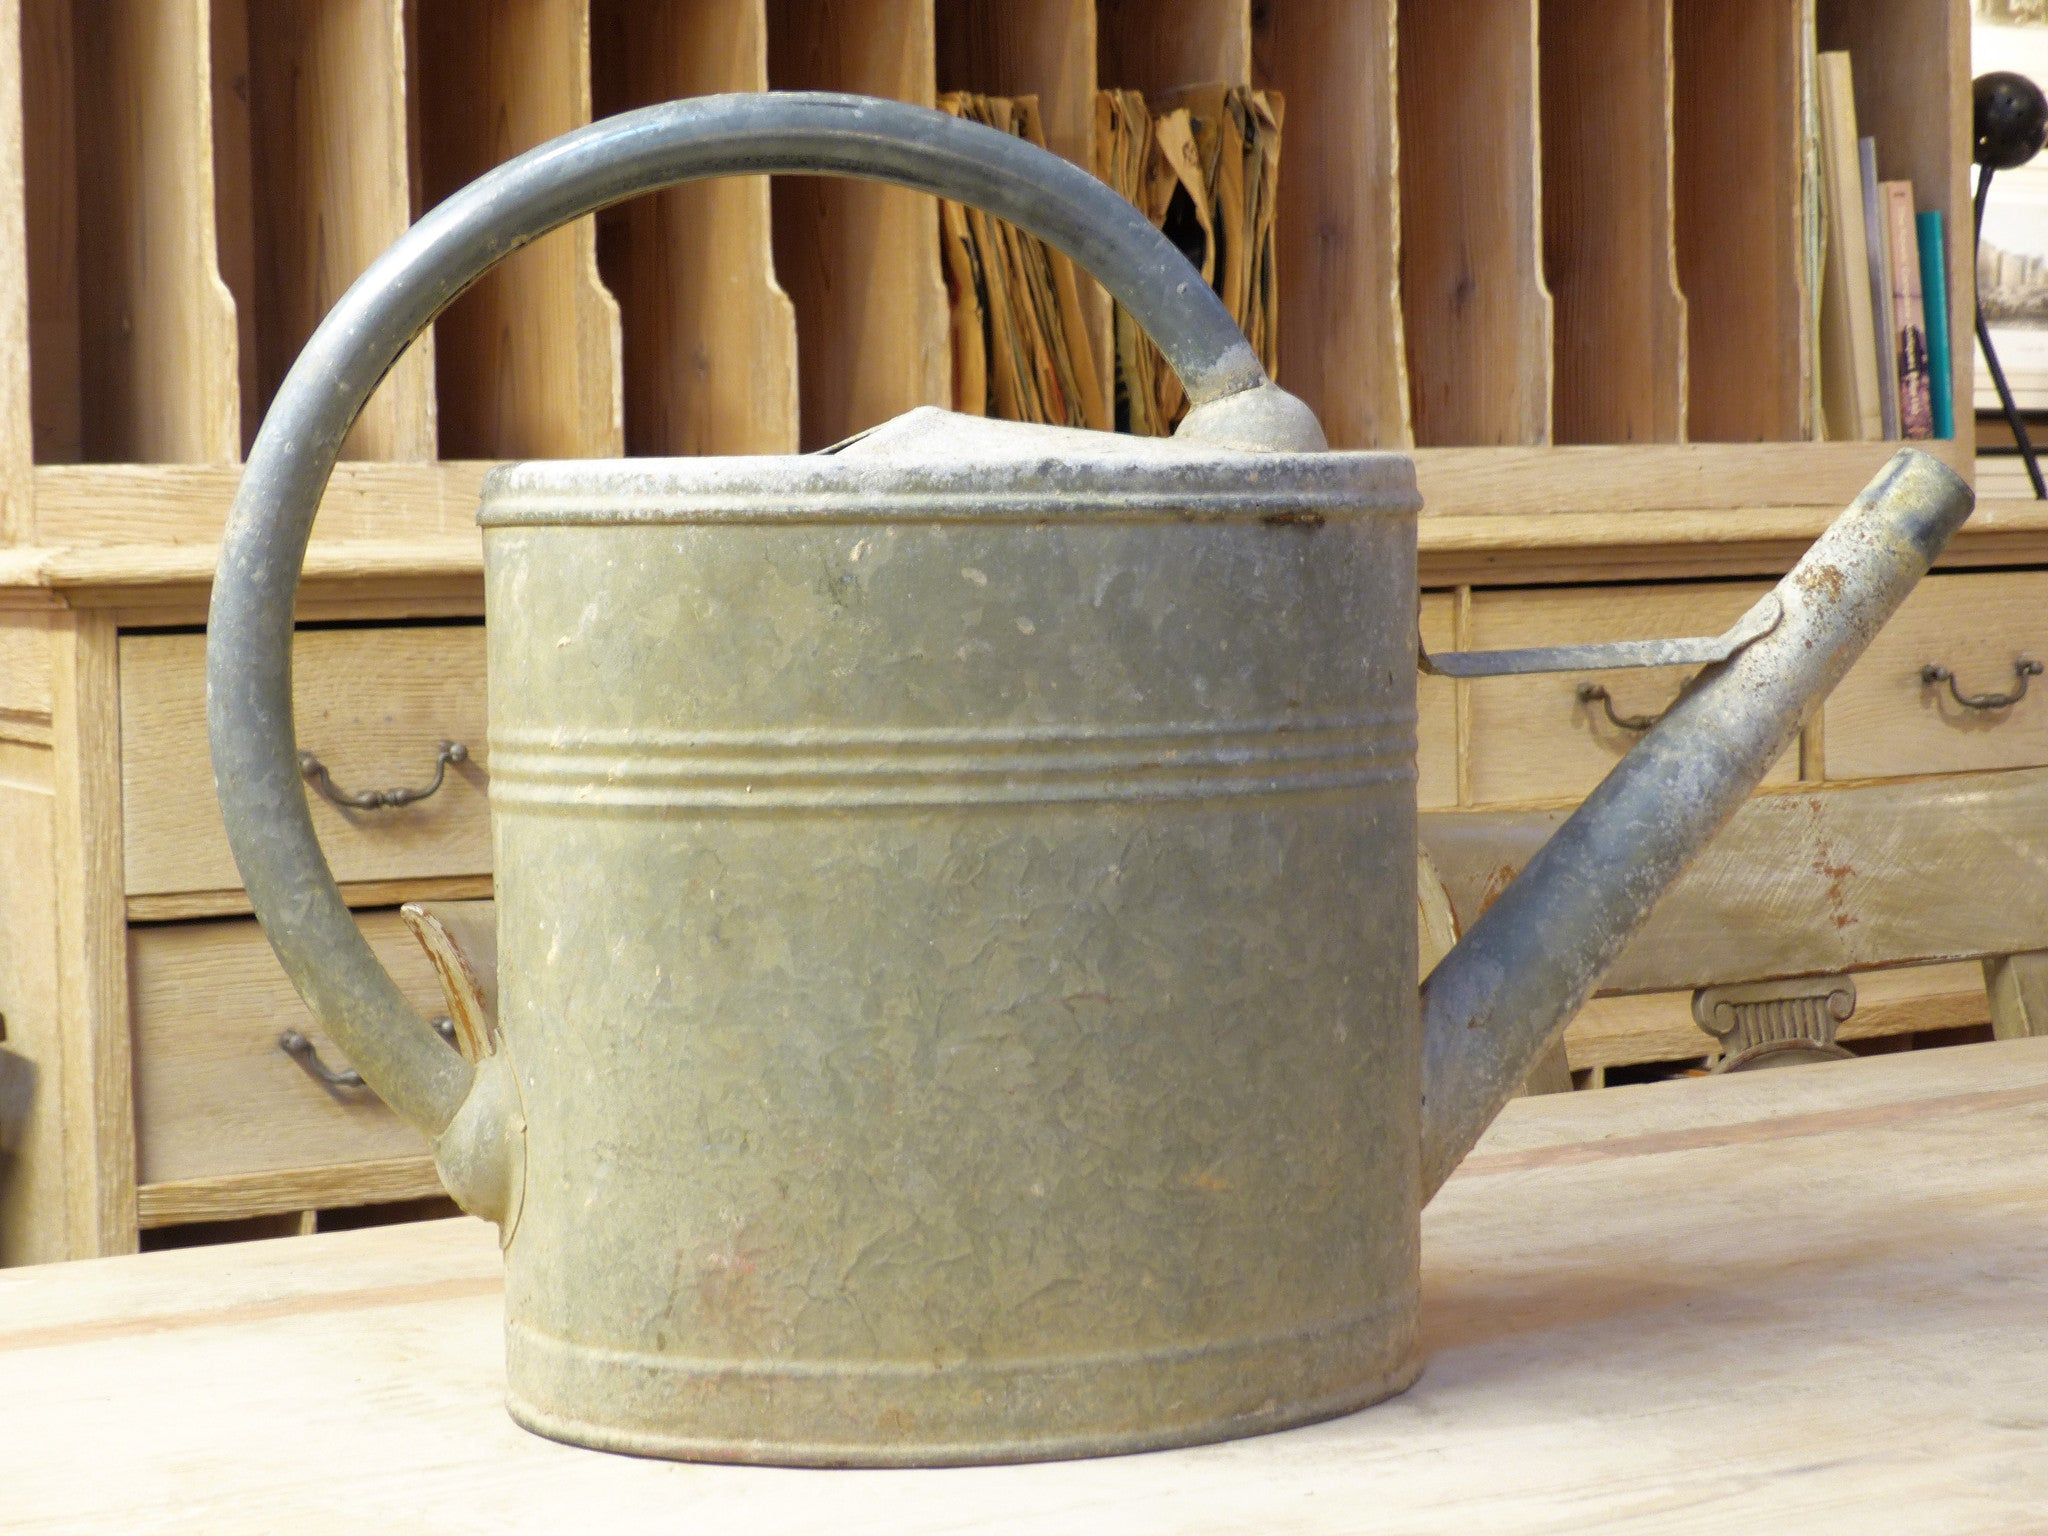 Vintage French zinc watering can